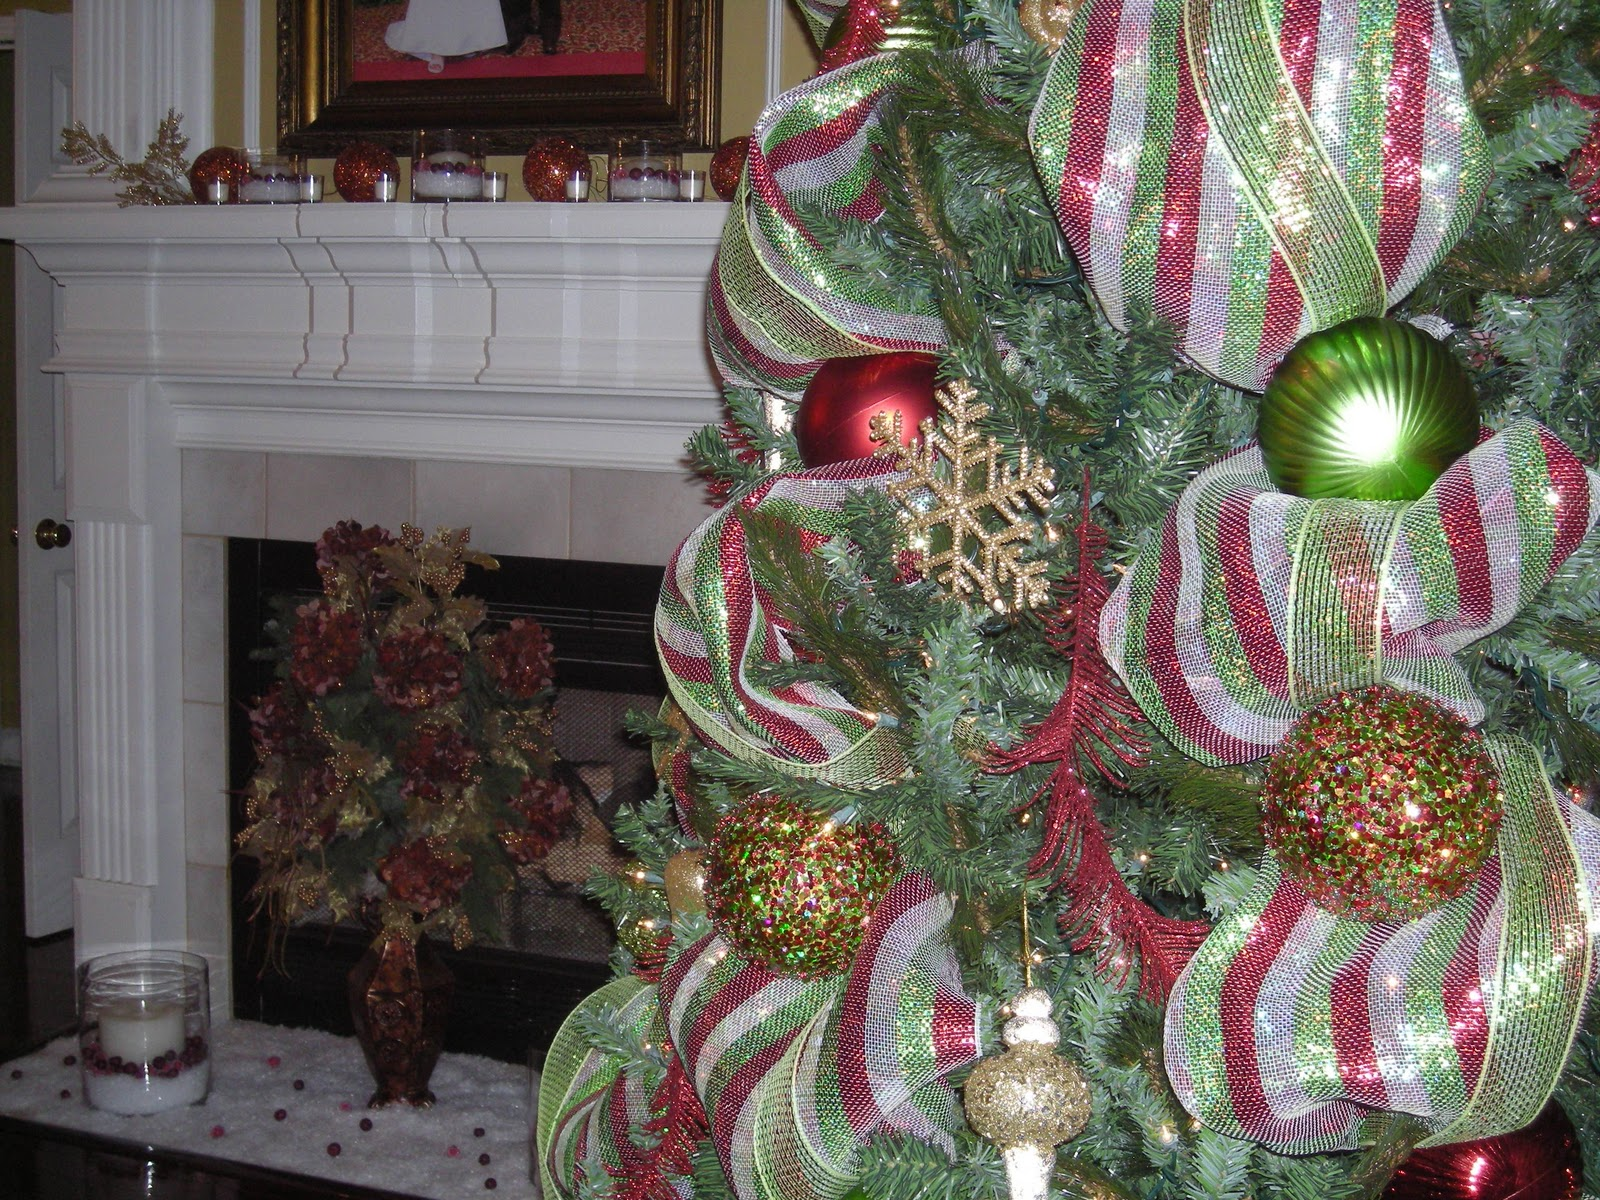 Christmas tree decorations with mesh - photo#19